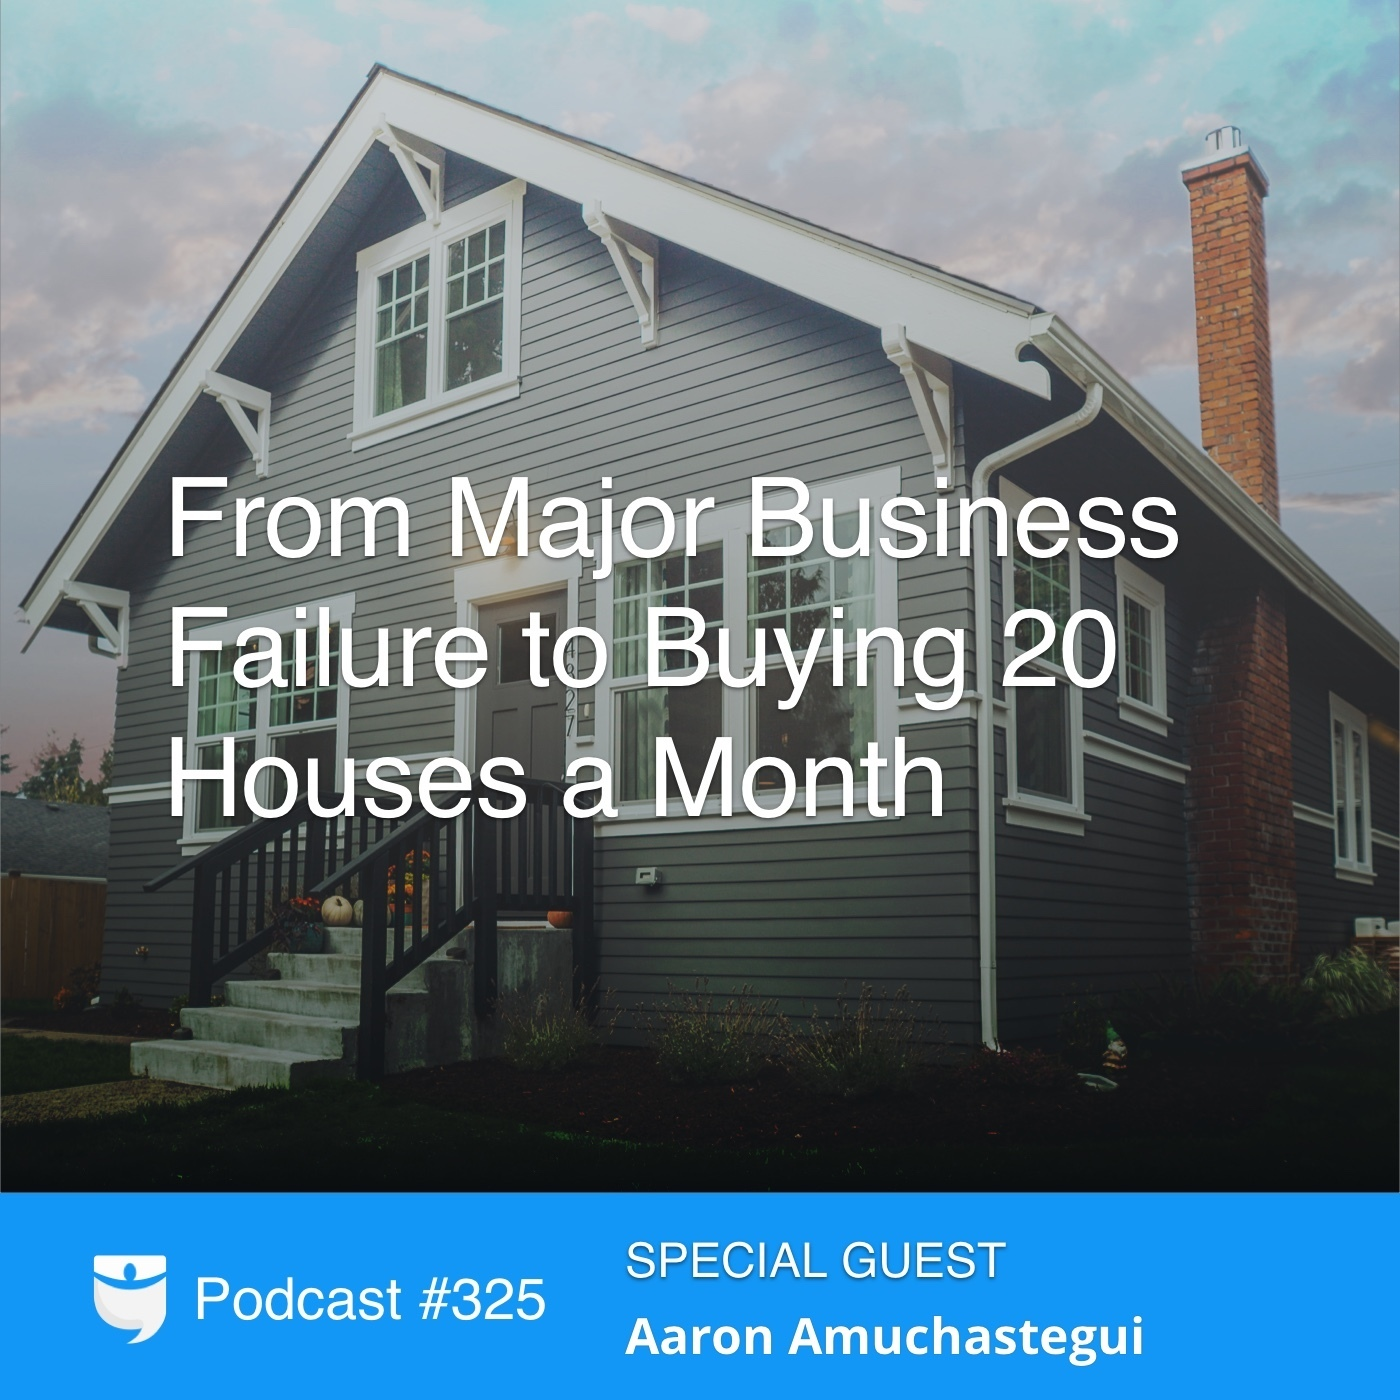 #325: From Major Business Failure to Buying 20 Houses a Month With Aaron Amuchastegui